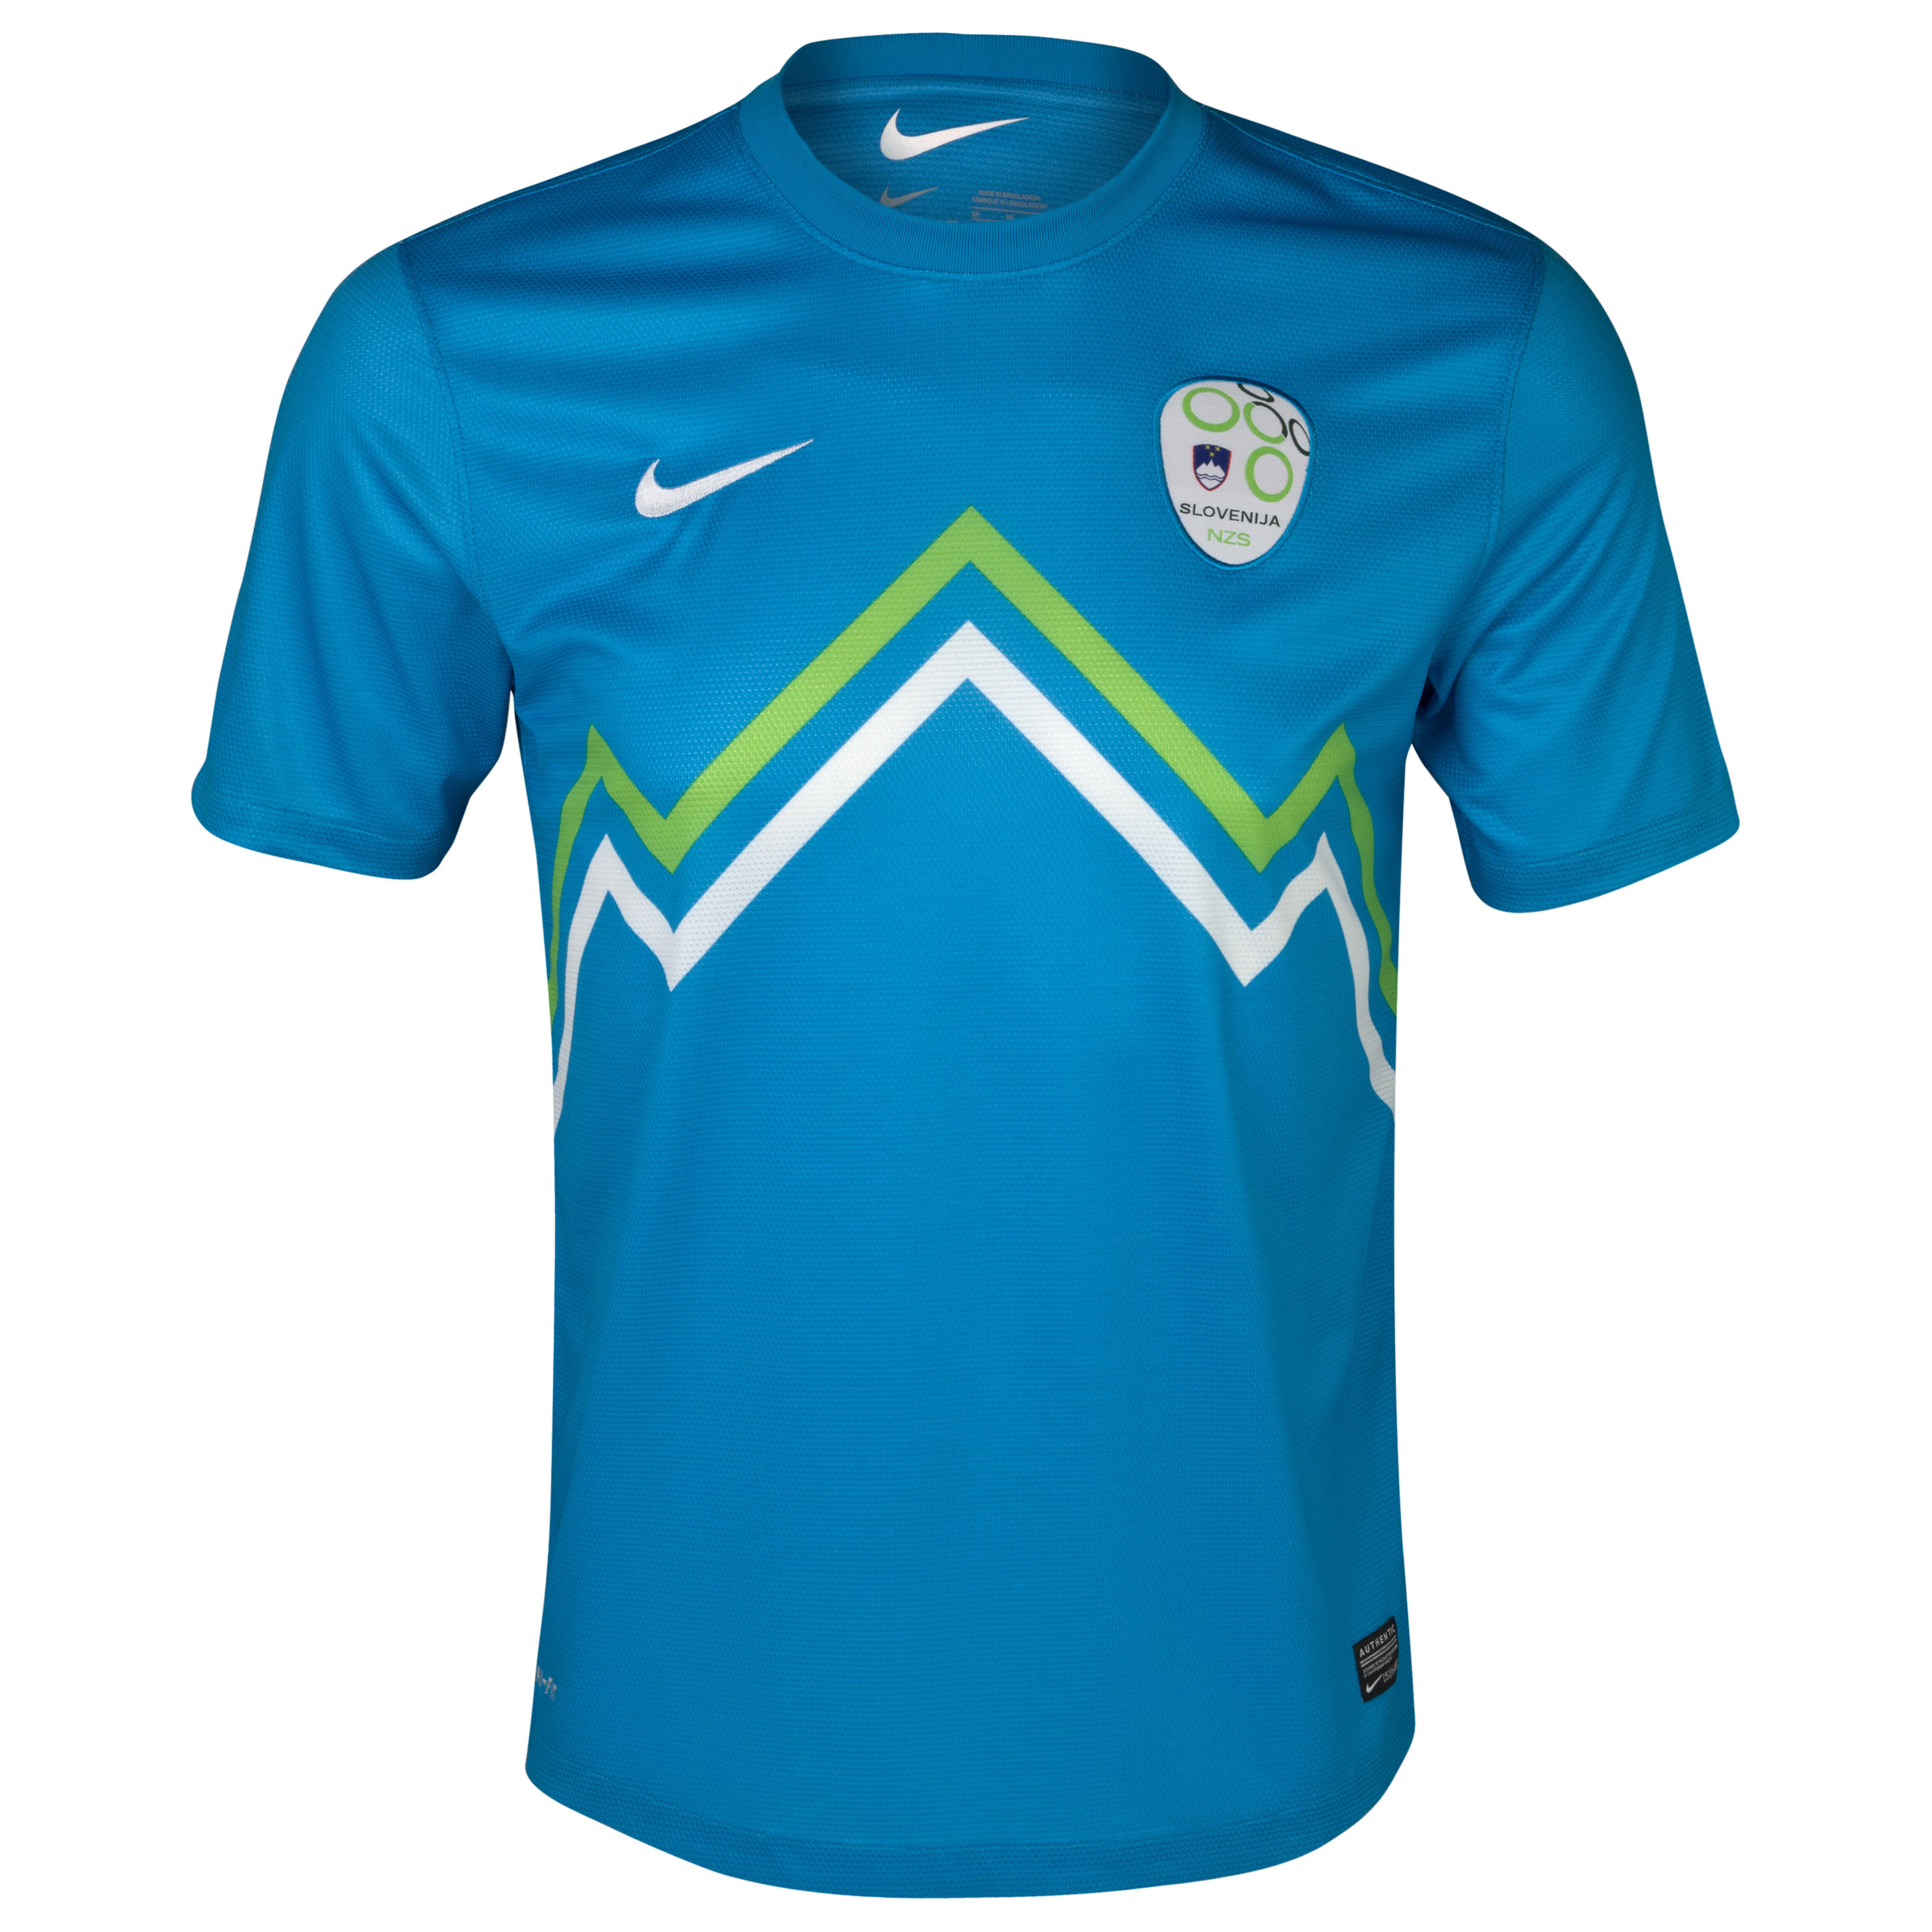 Slovenia Home Shirt 2012/13